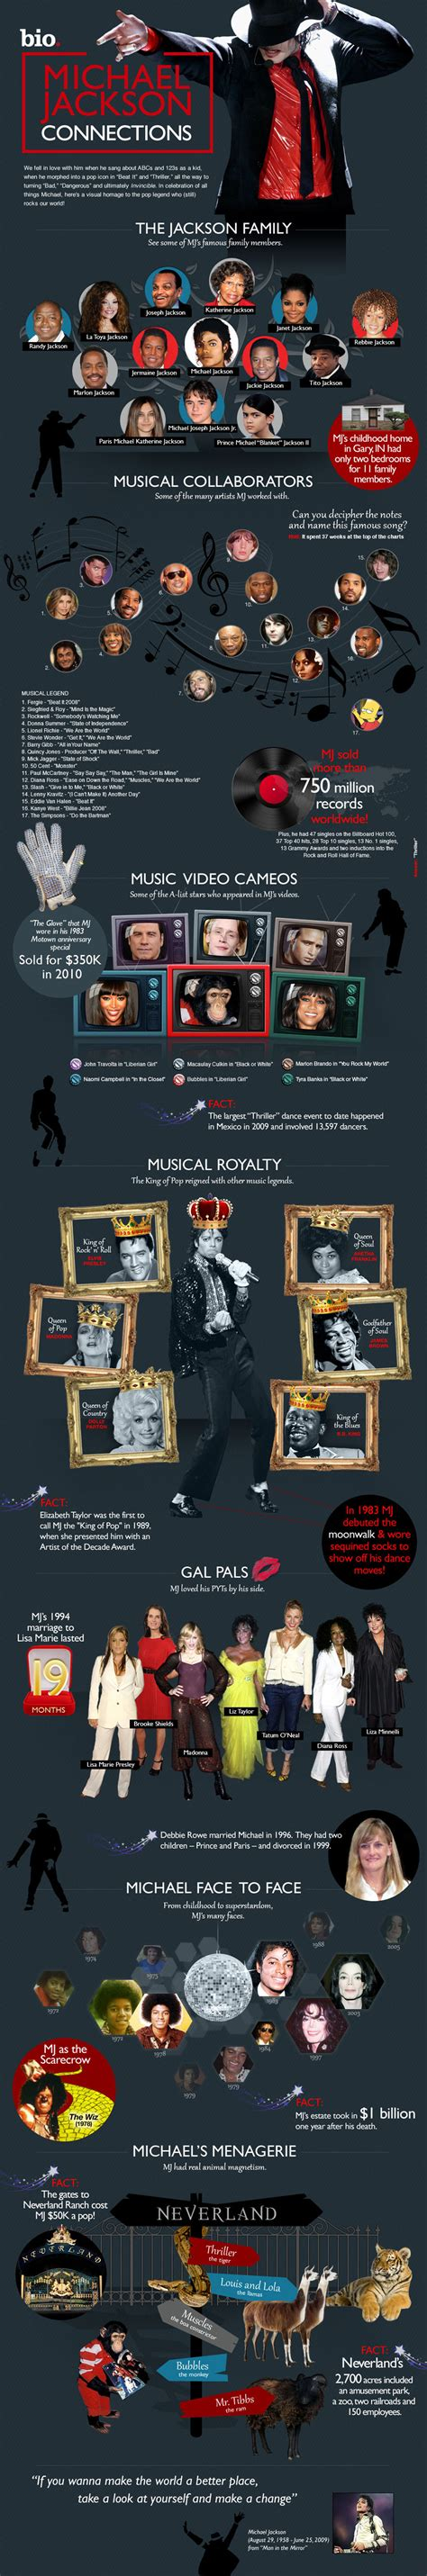 michael jackson graphic biography michael jackson life and work infographic